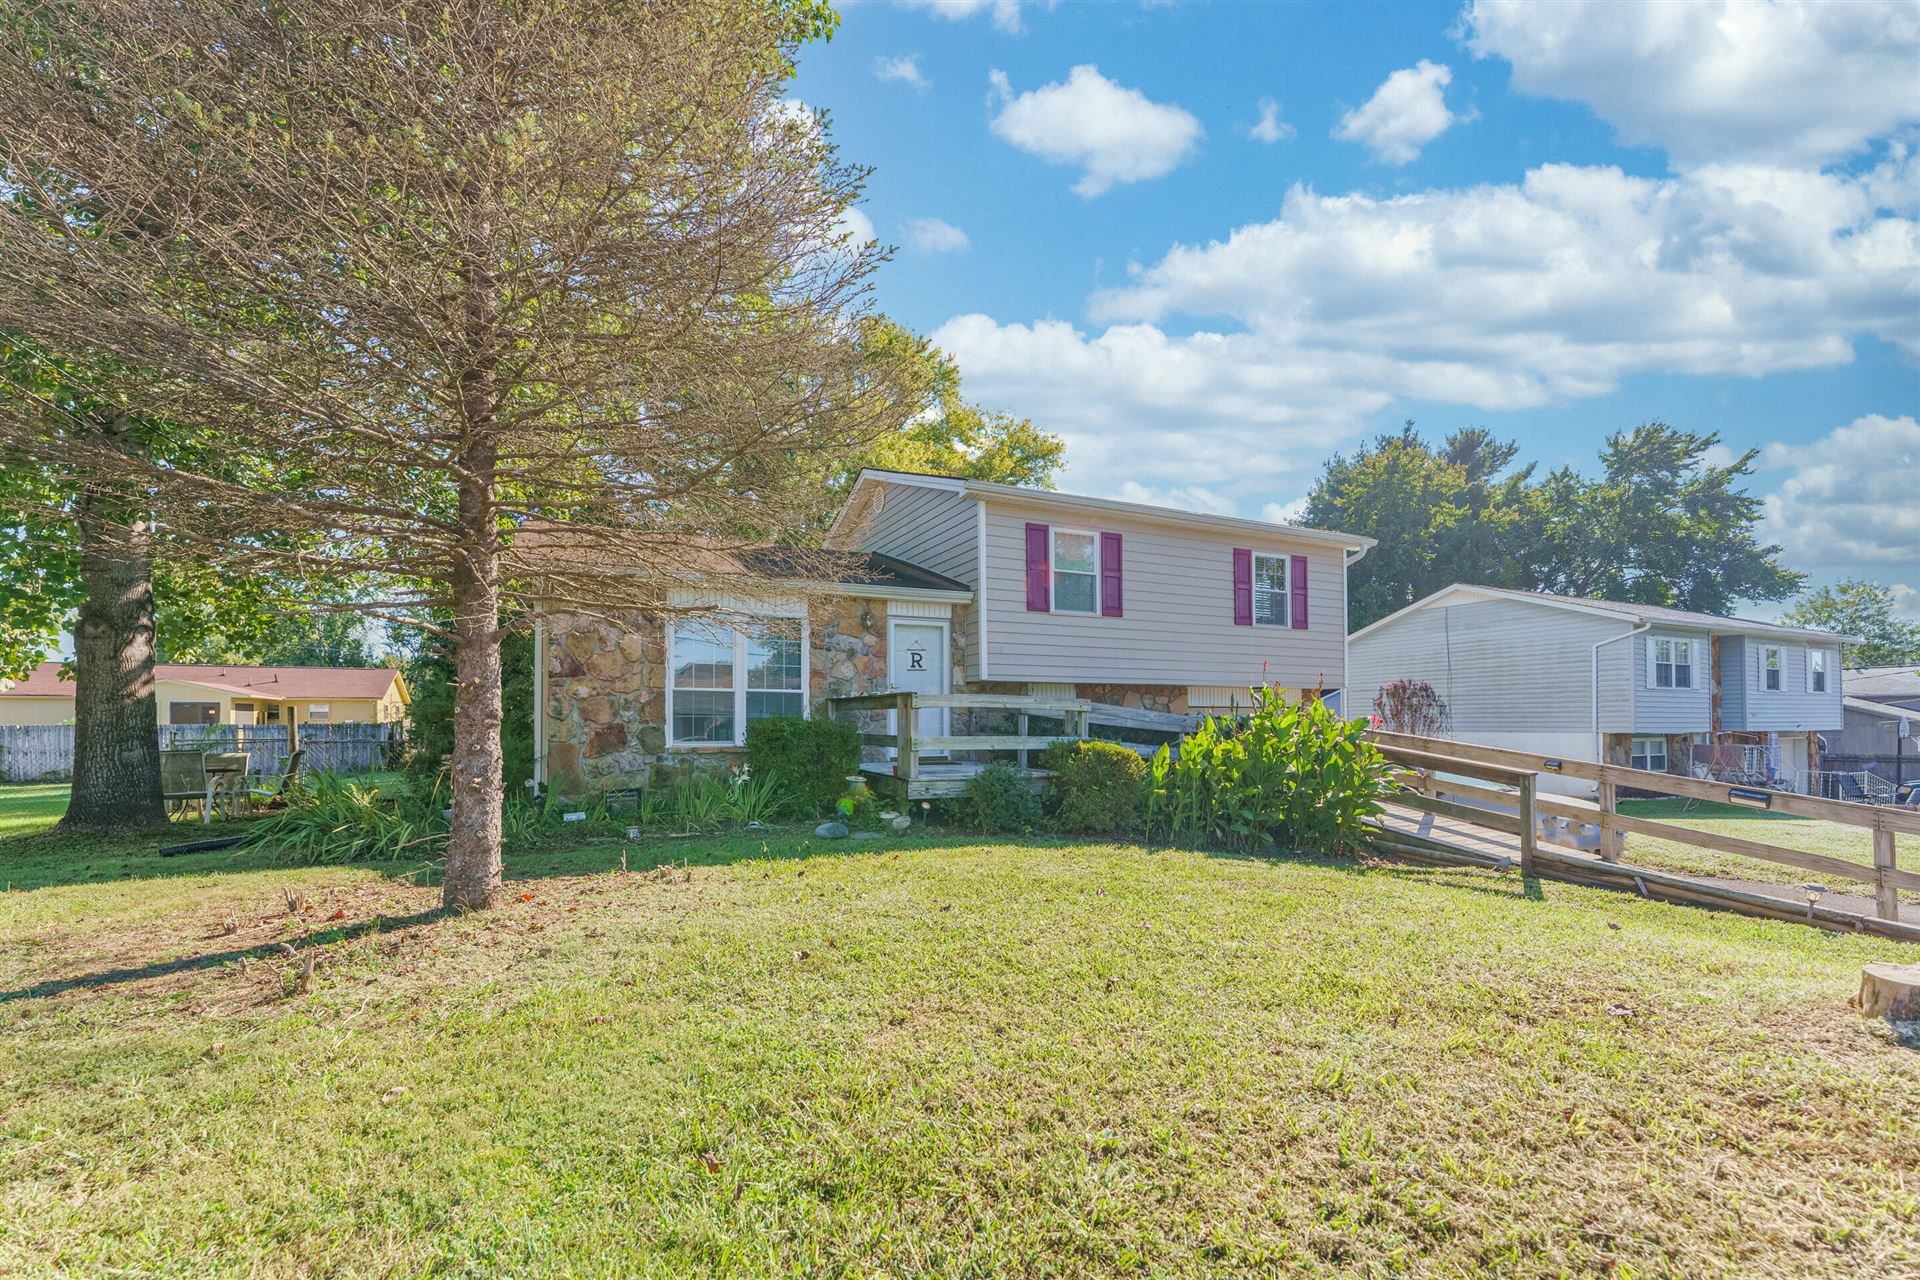 Photo of 5720 Montina Rd, Knoxville, TN 37912 (MLS # 1168593)